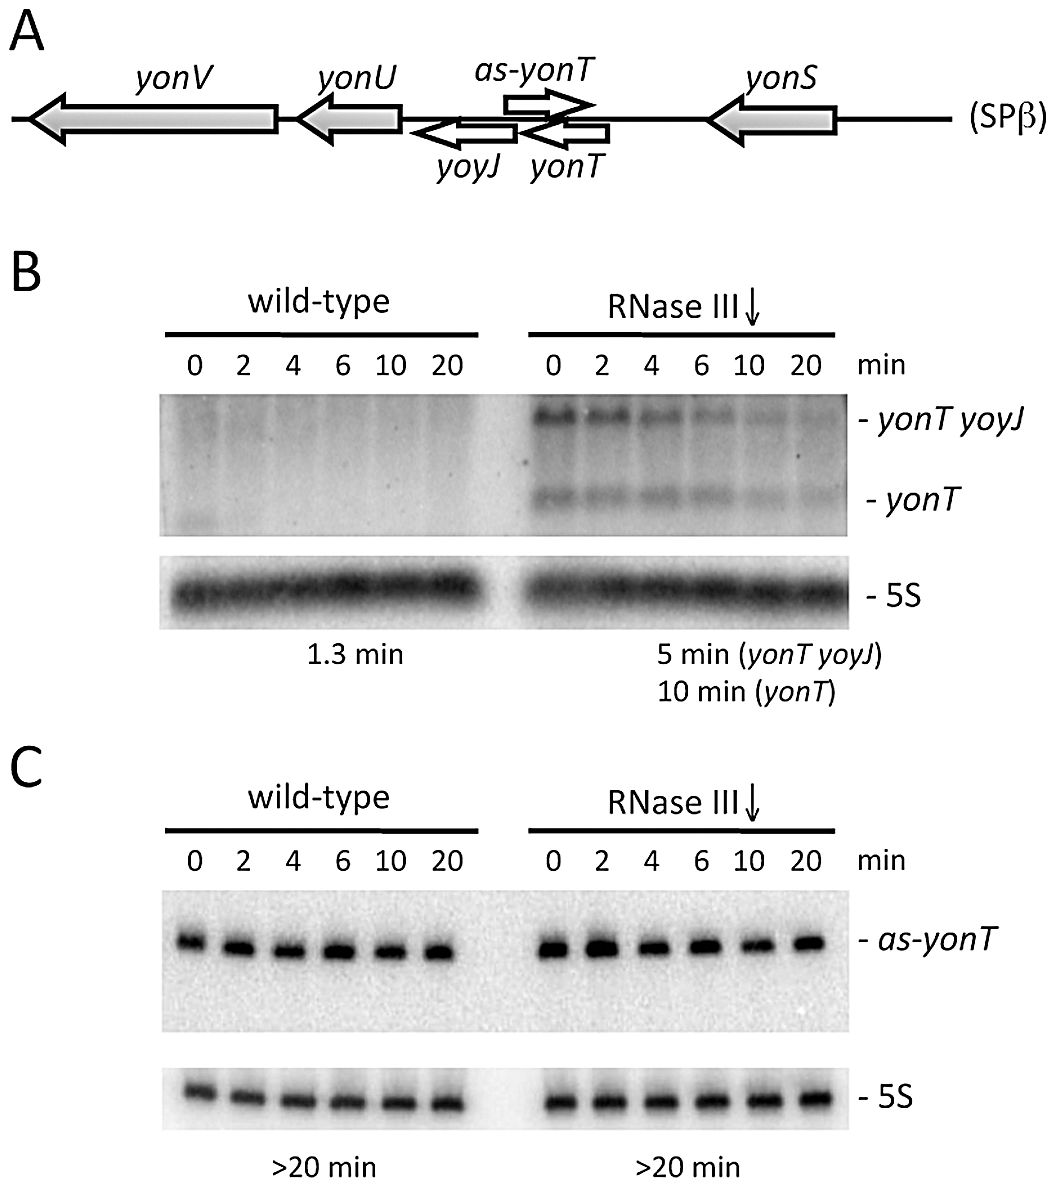 The <i>yonT</i> mRNA is stabilized in strains depleted for RNase III.